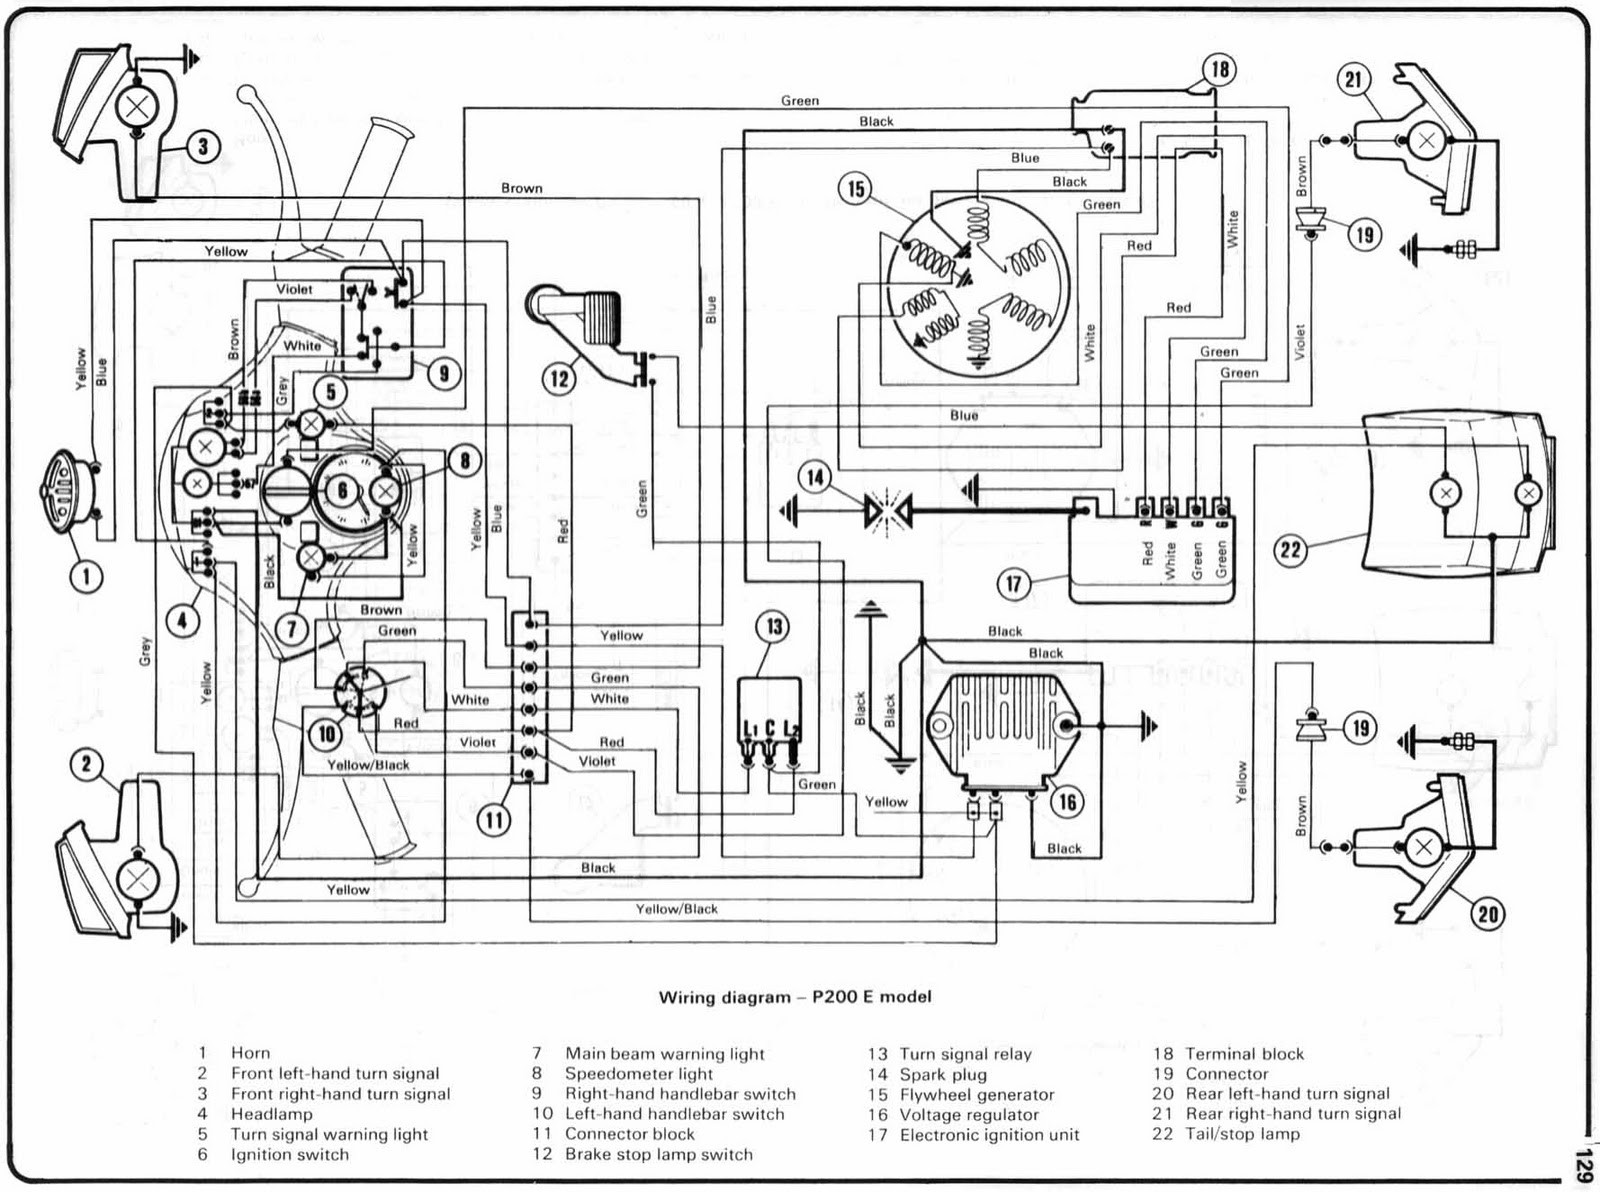 vespa wiring diagram private sharing about wiring diagram u2022 rh caraccessoriesandsoftware co uk